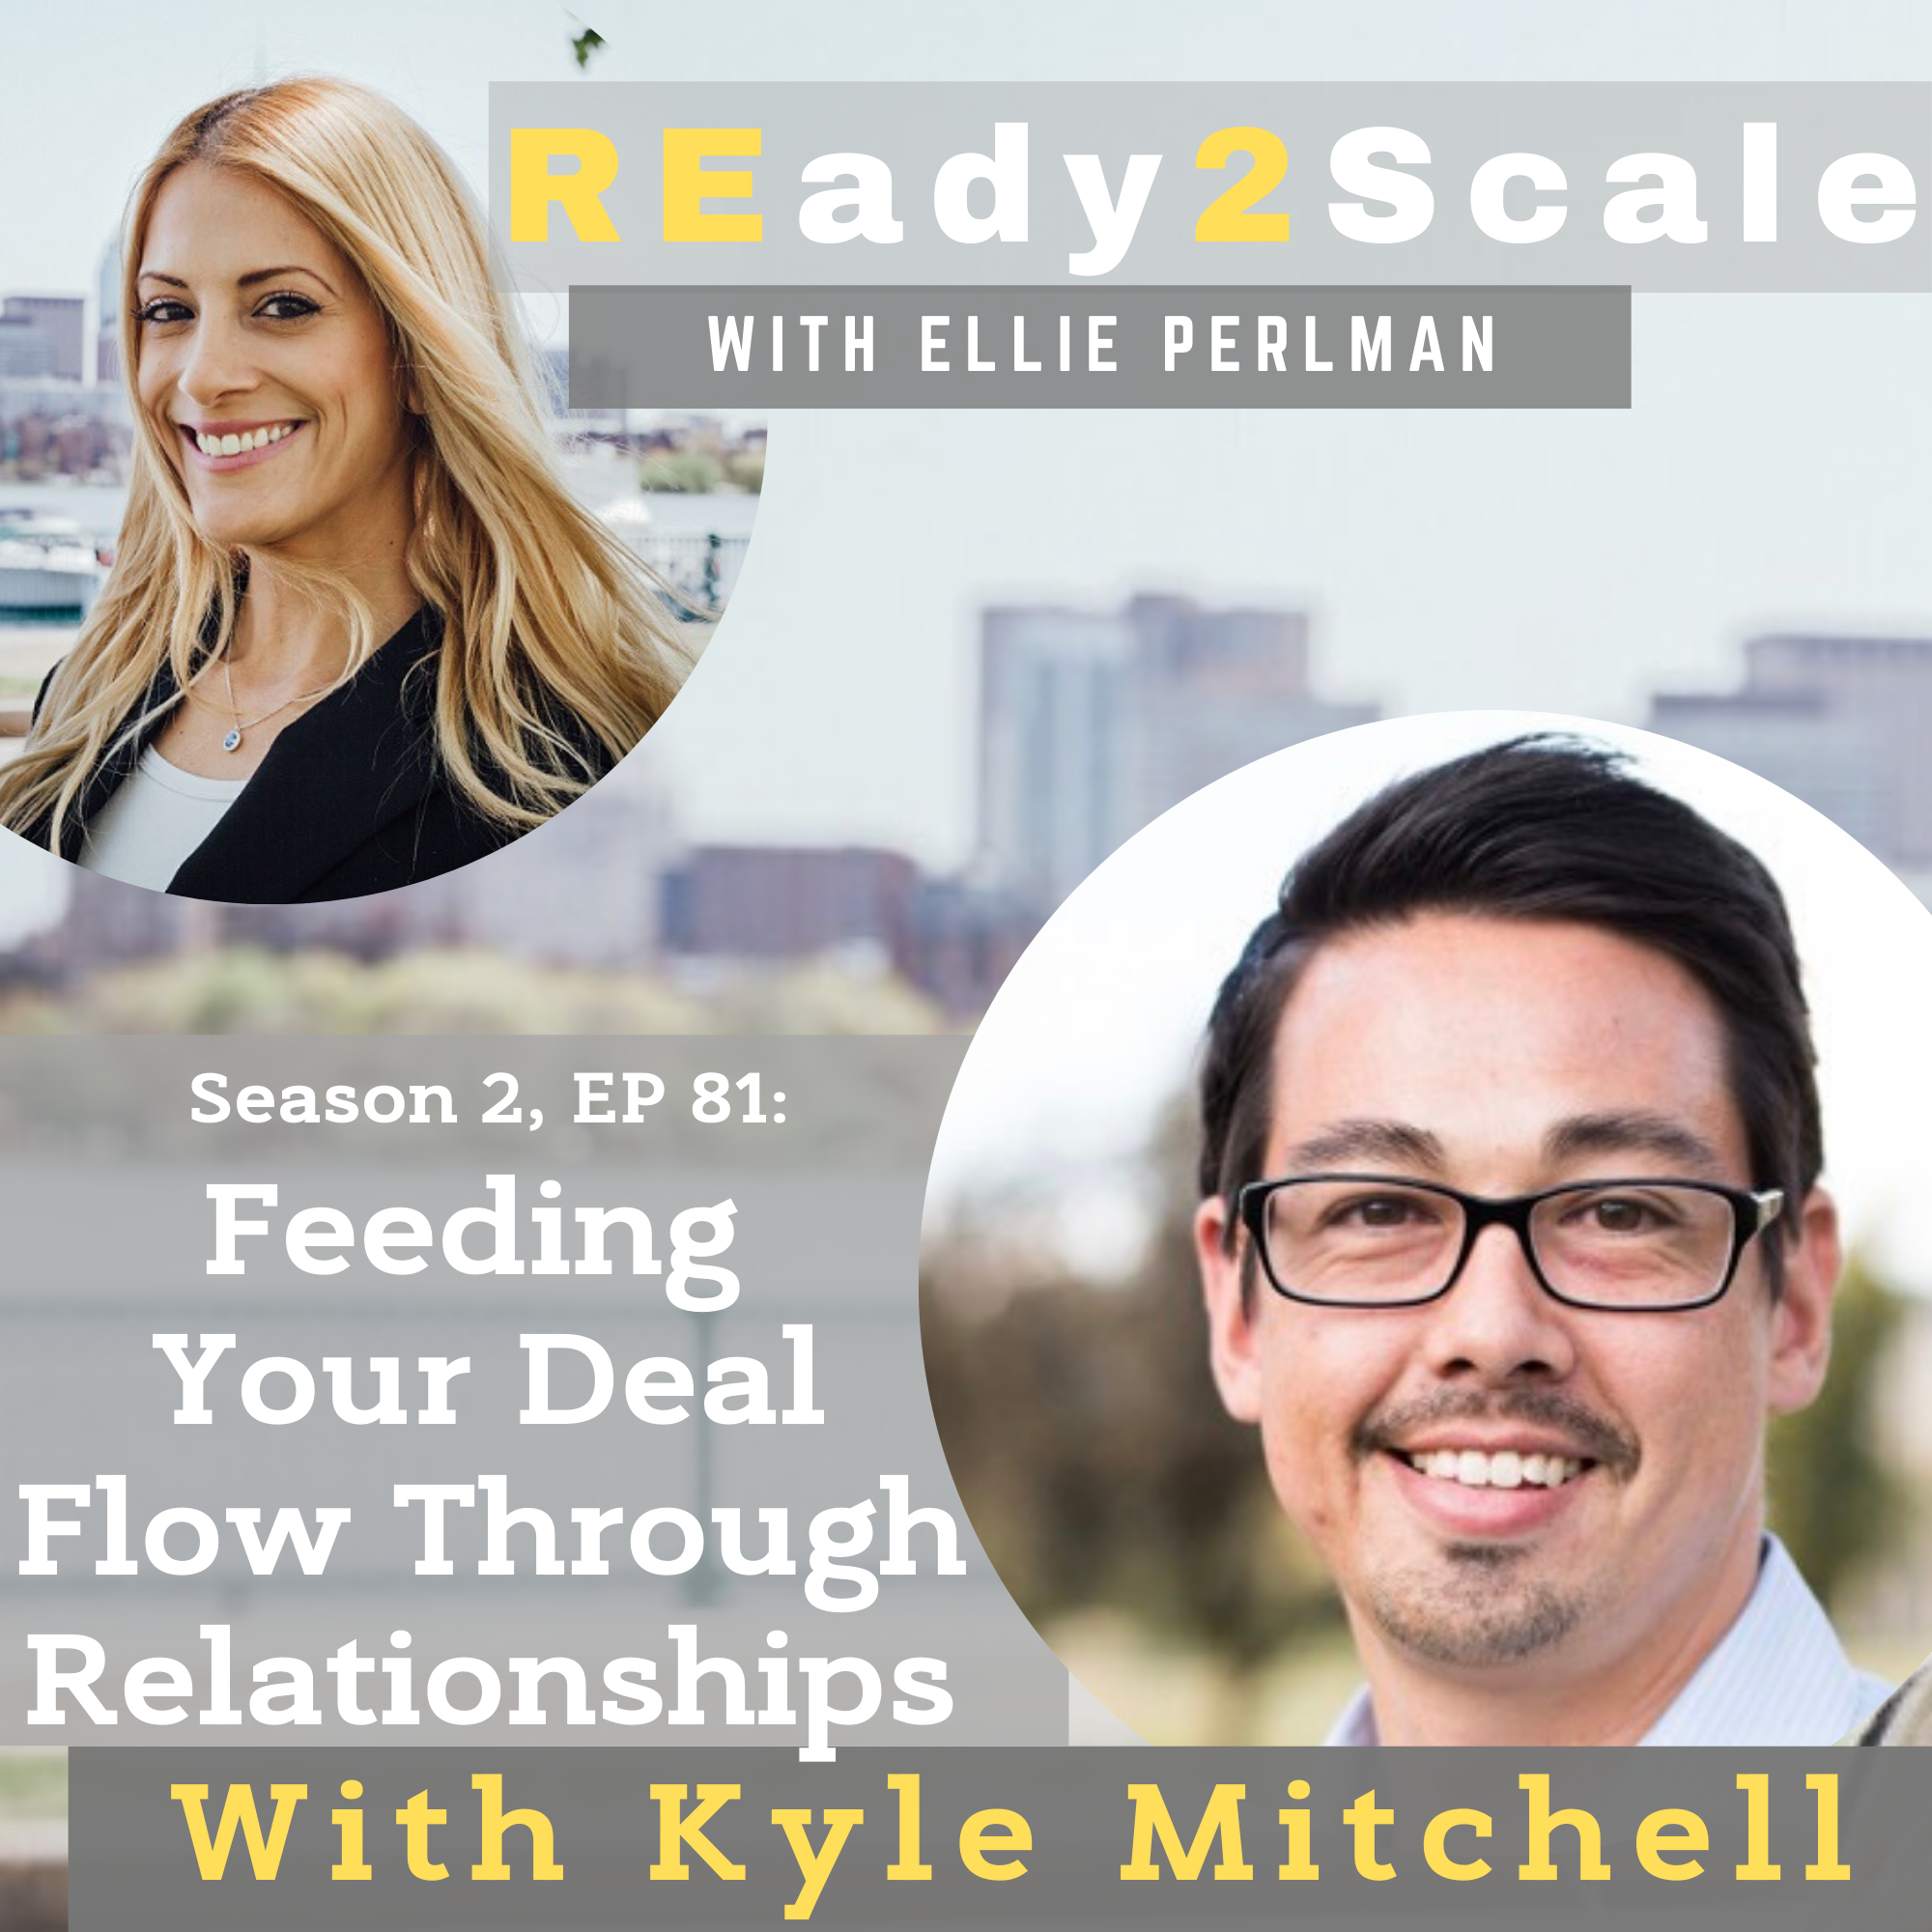 S2 EP 81: Feeding Your Deal Flow Through Relationships with Kyle Mitchell